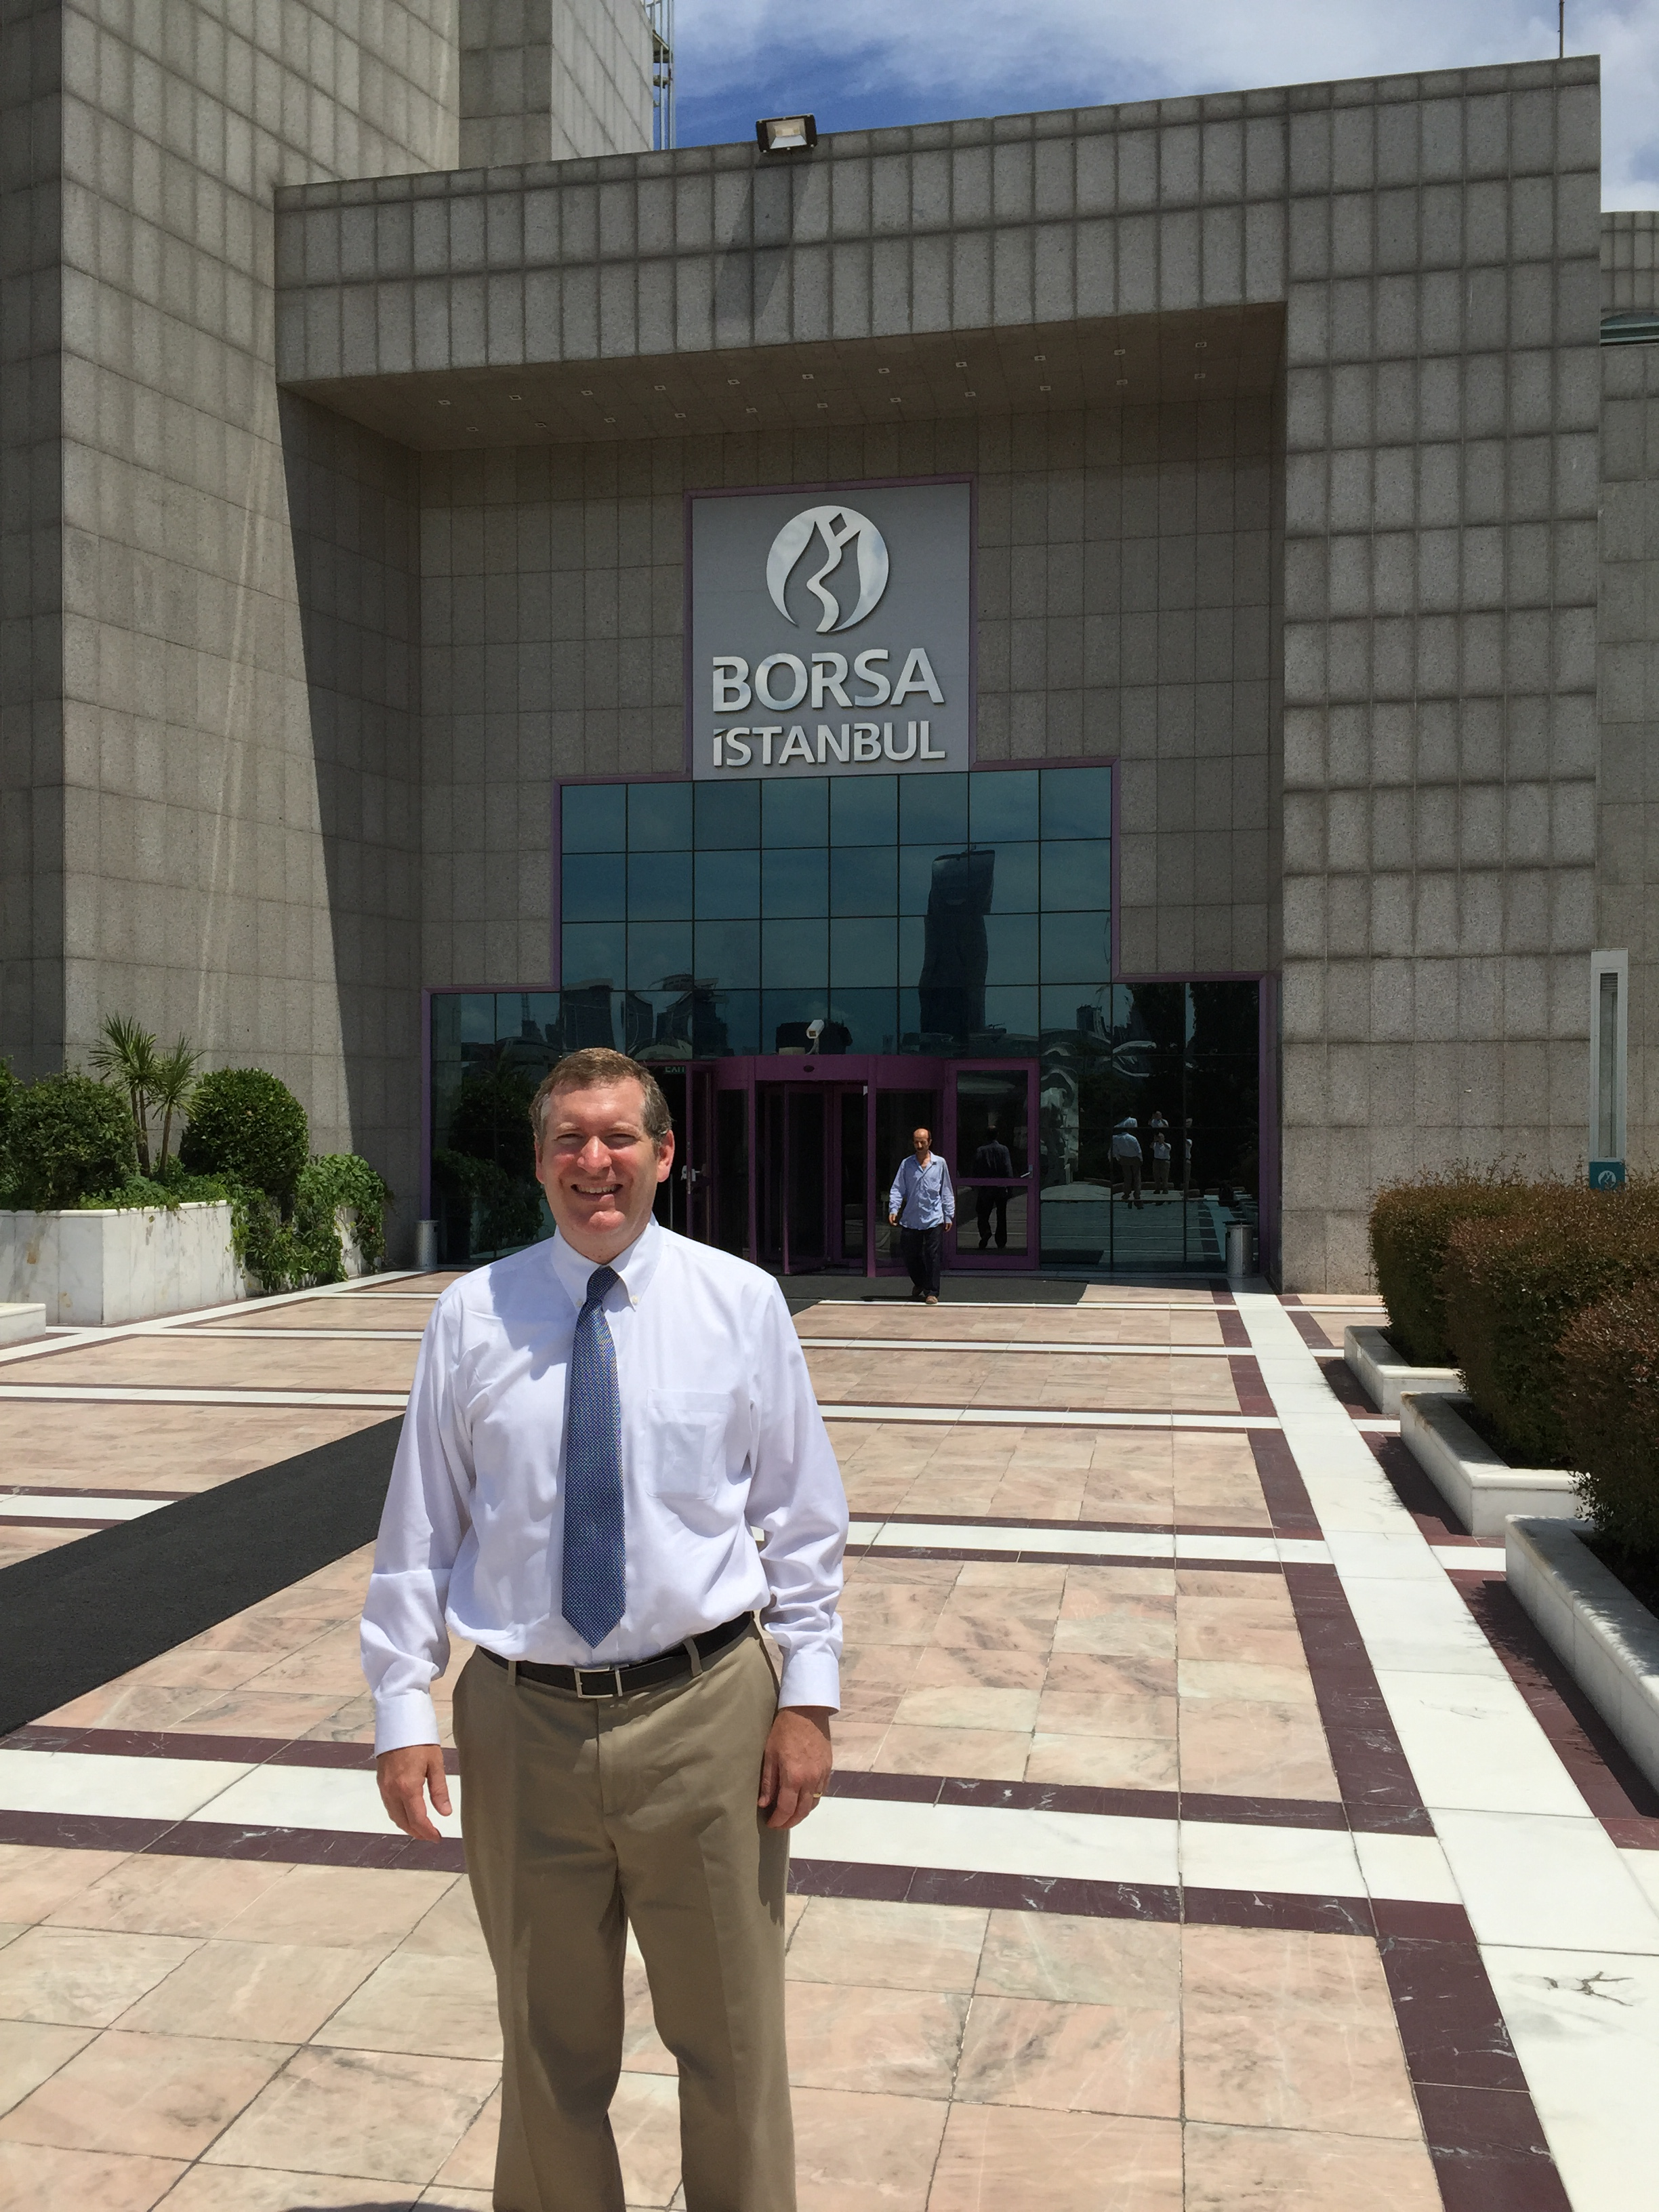 John Lunt in front of Borsa Istanbul